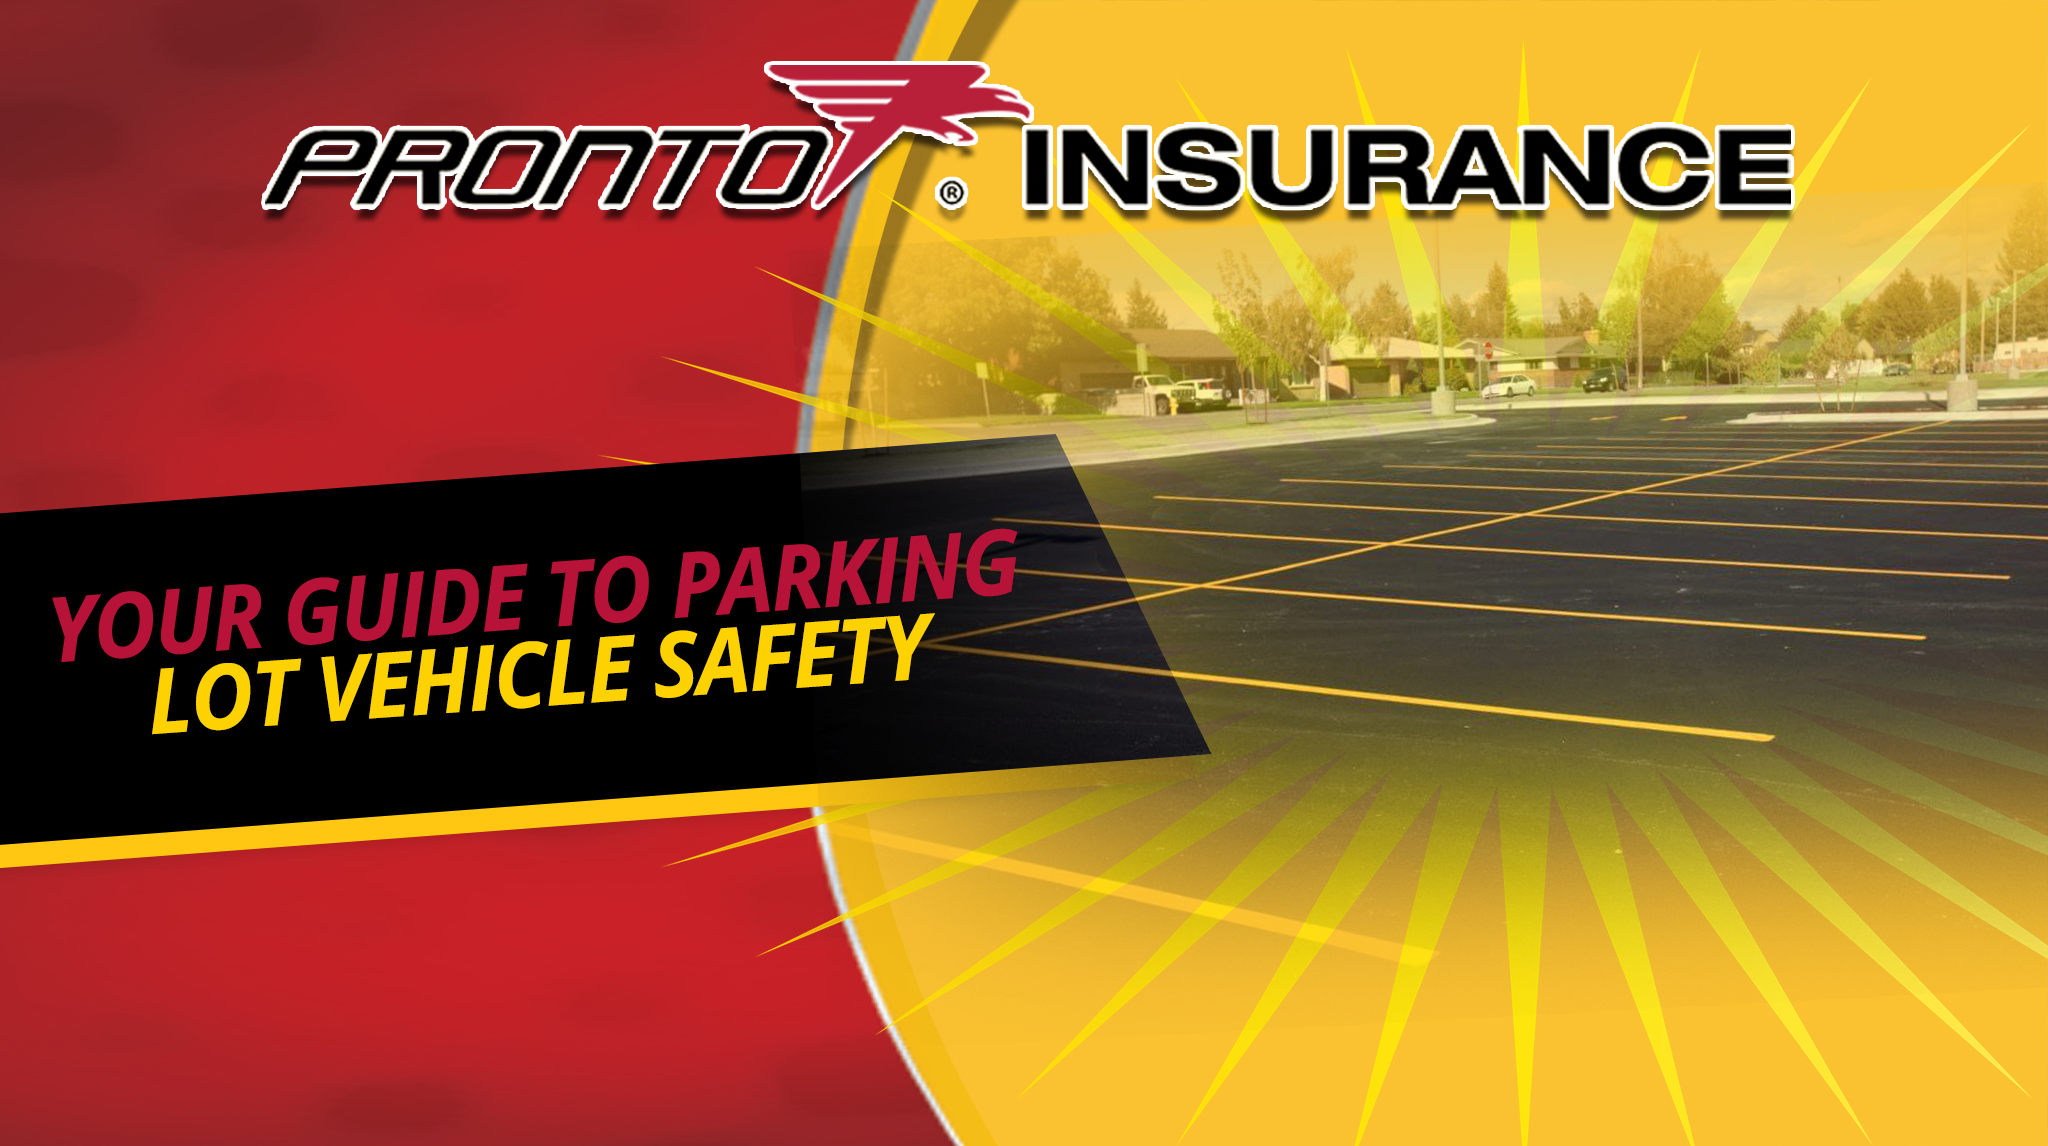 Your Guide to Parking Lot Vehicle Safety